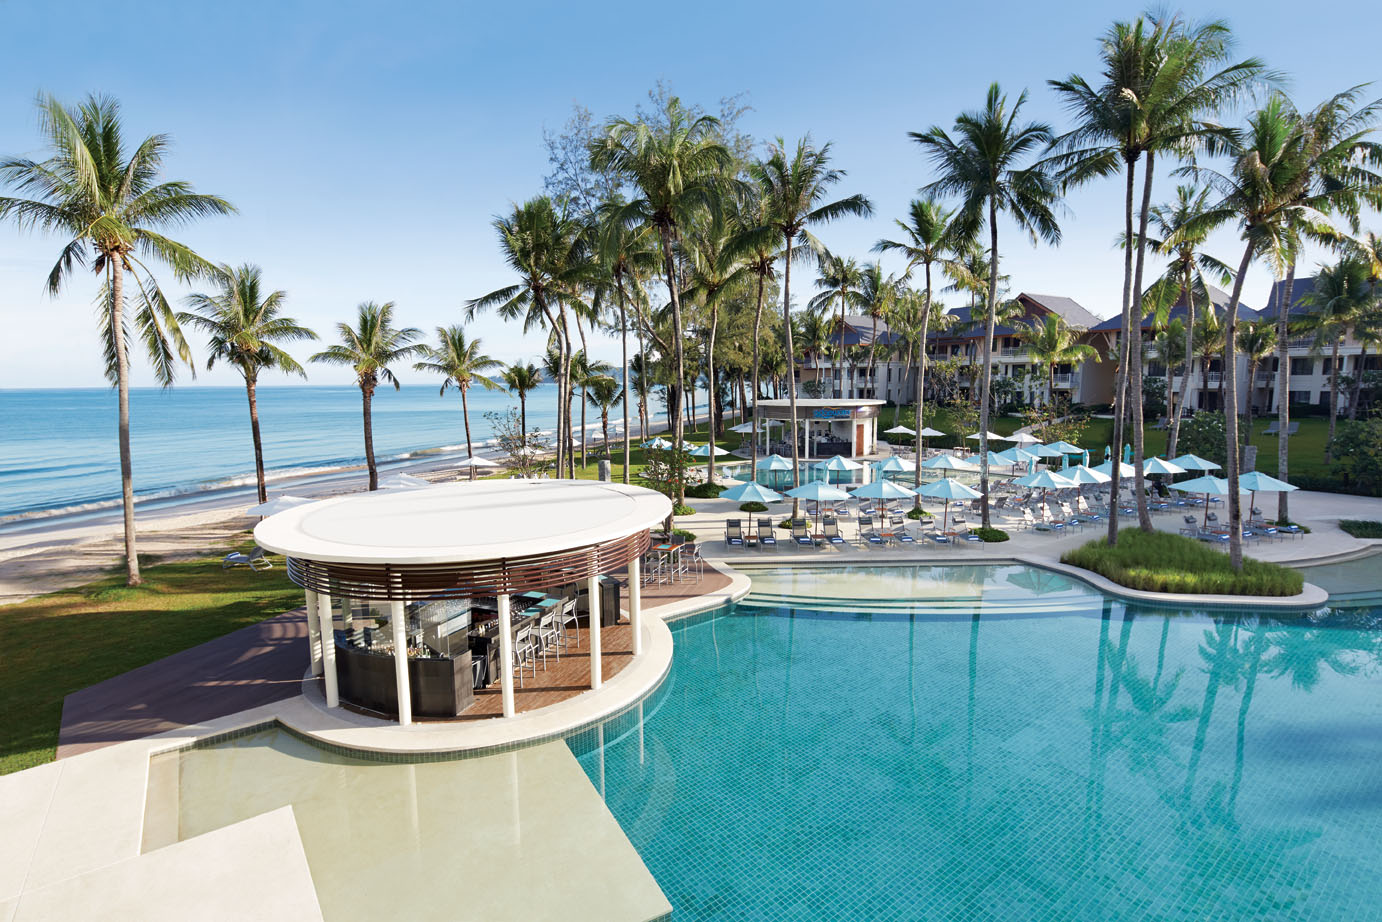 phuket beach hotel Discount hotels near patong beach, phuket save up to 75% off hotels near beaches in phuket rates from usd $7 book online.